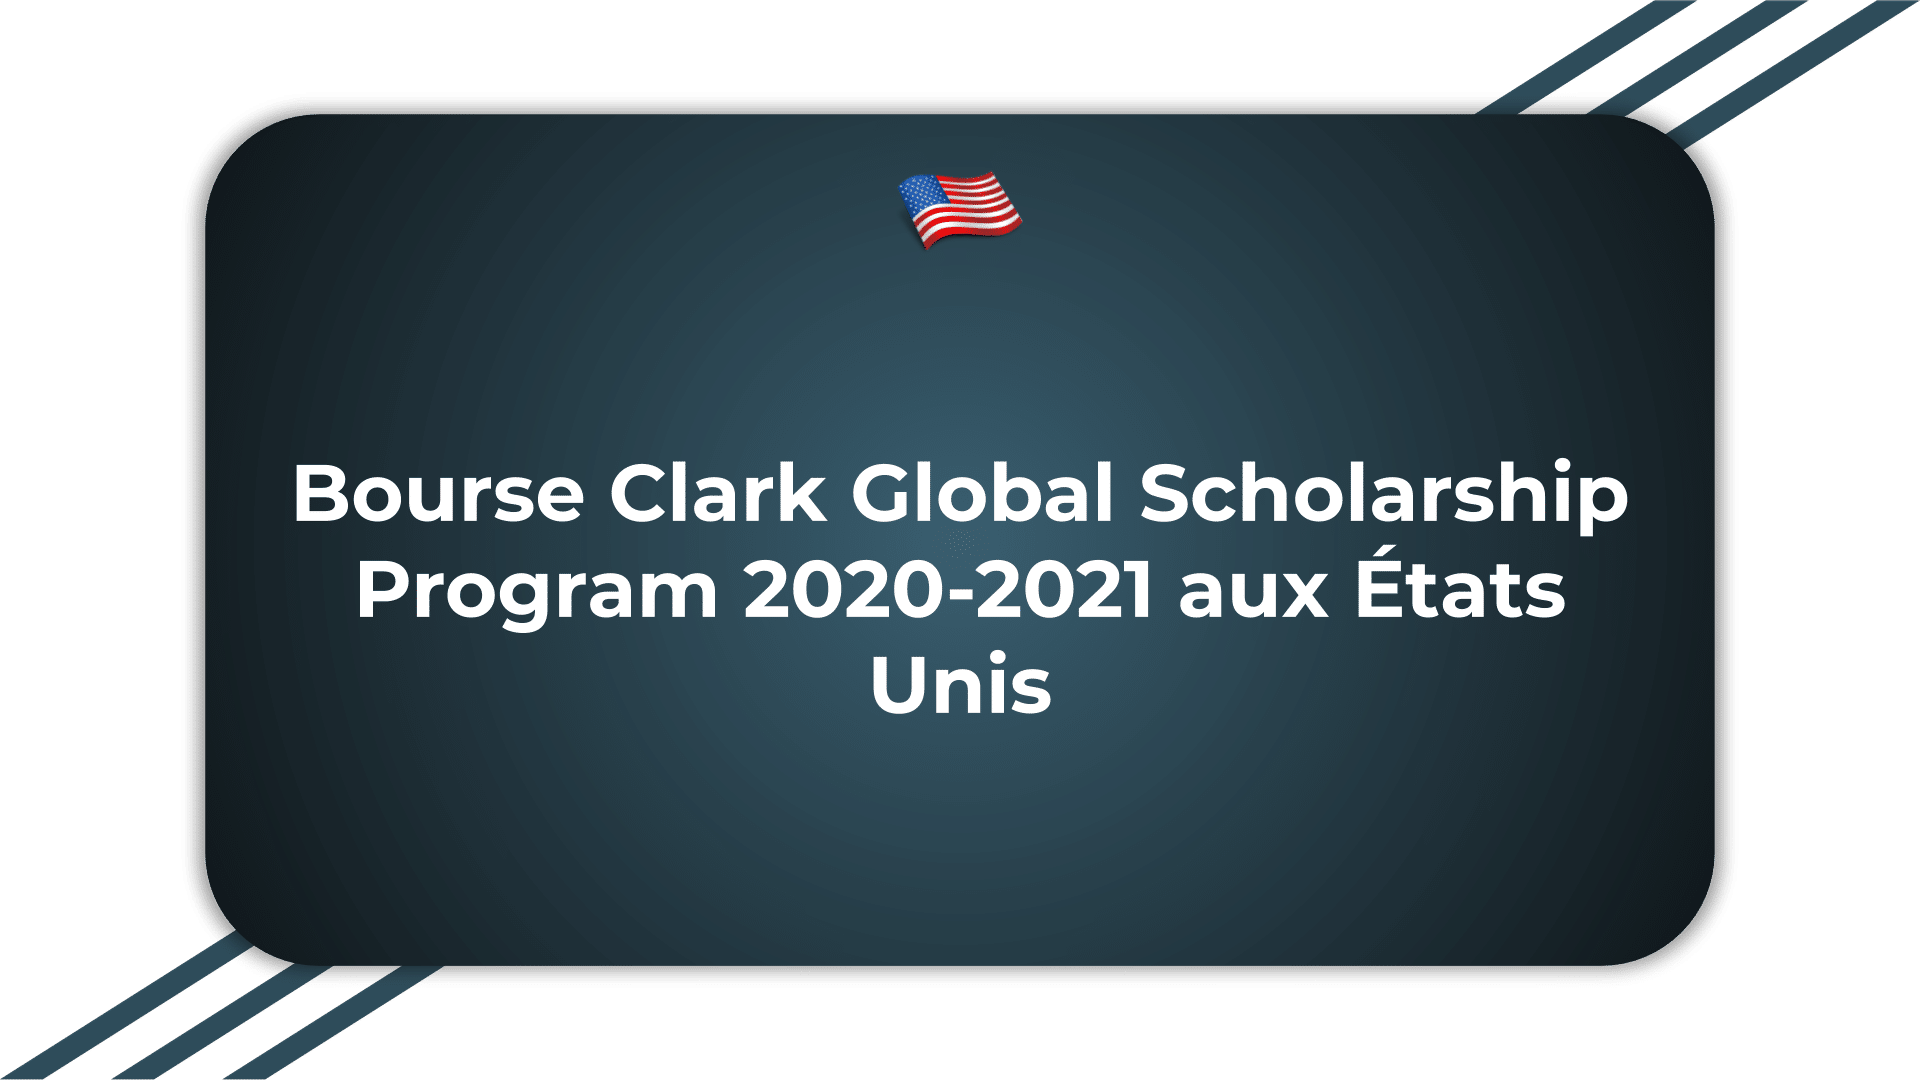 Bourse Clark Global Scholarship Program